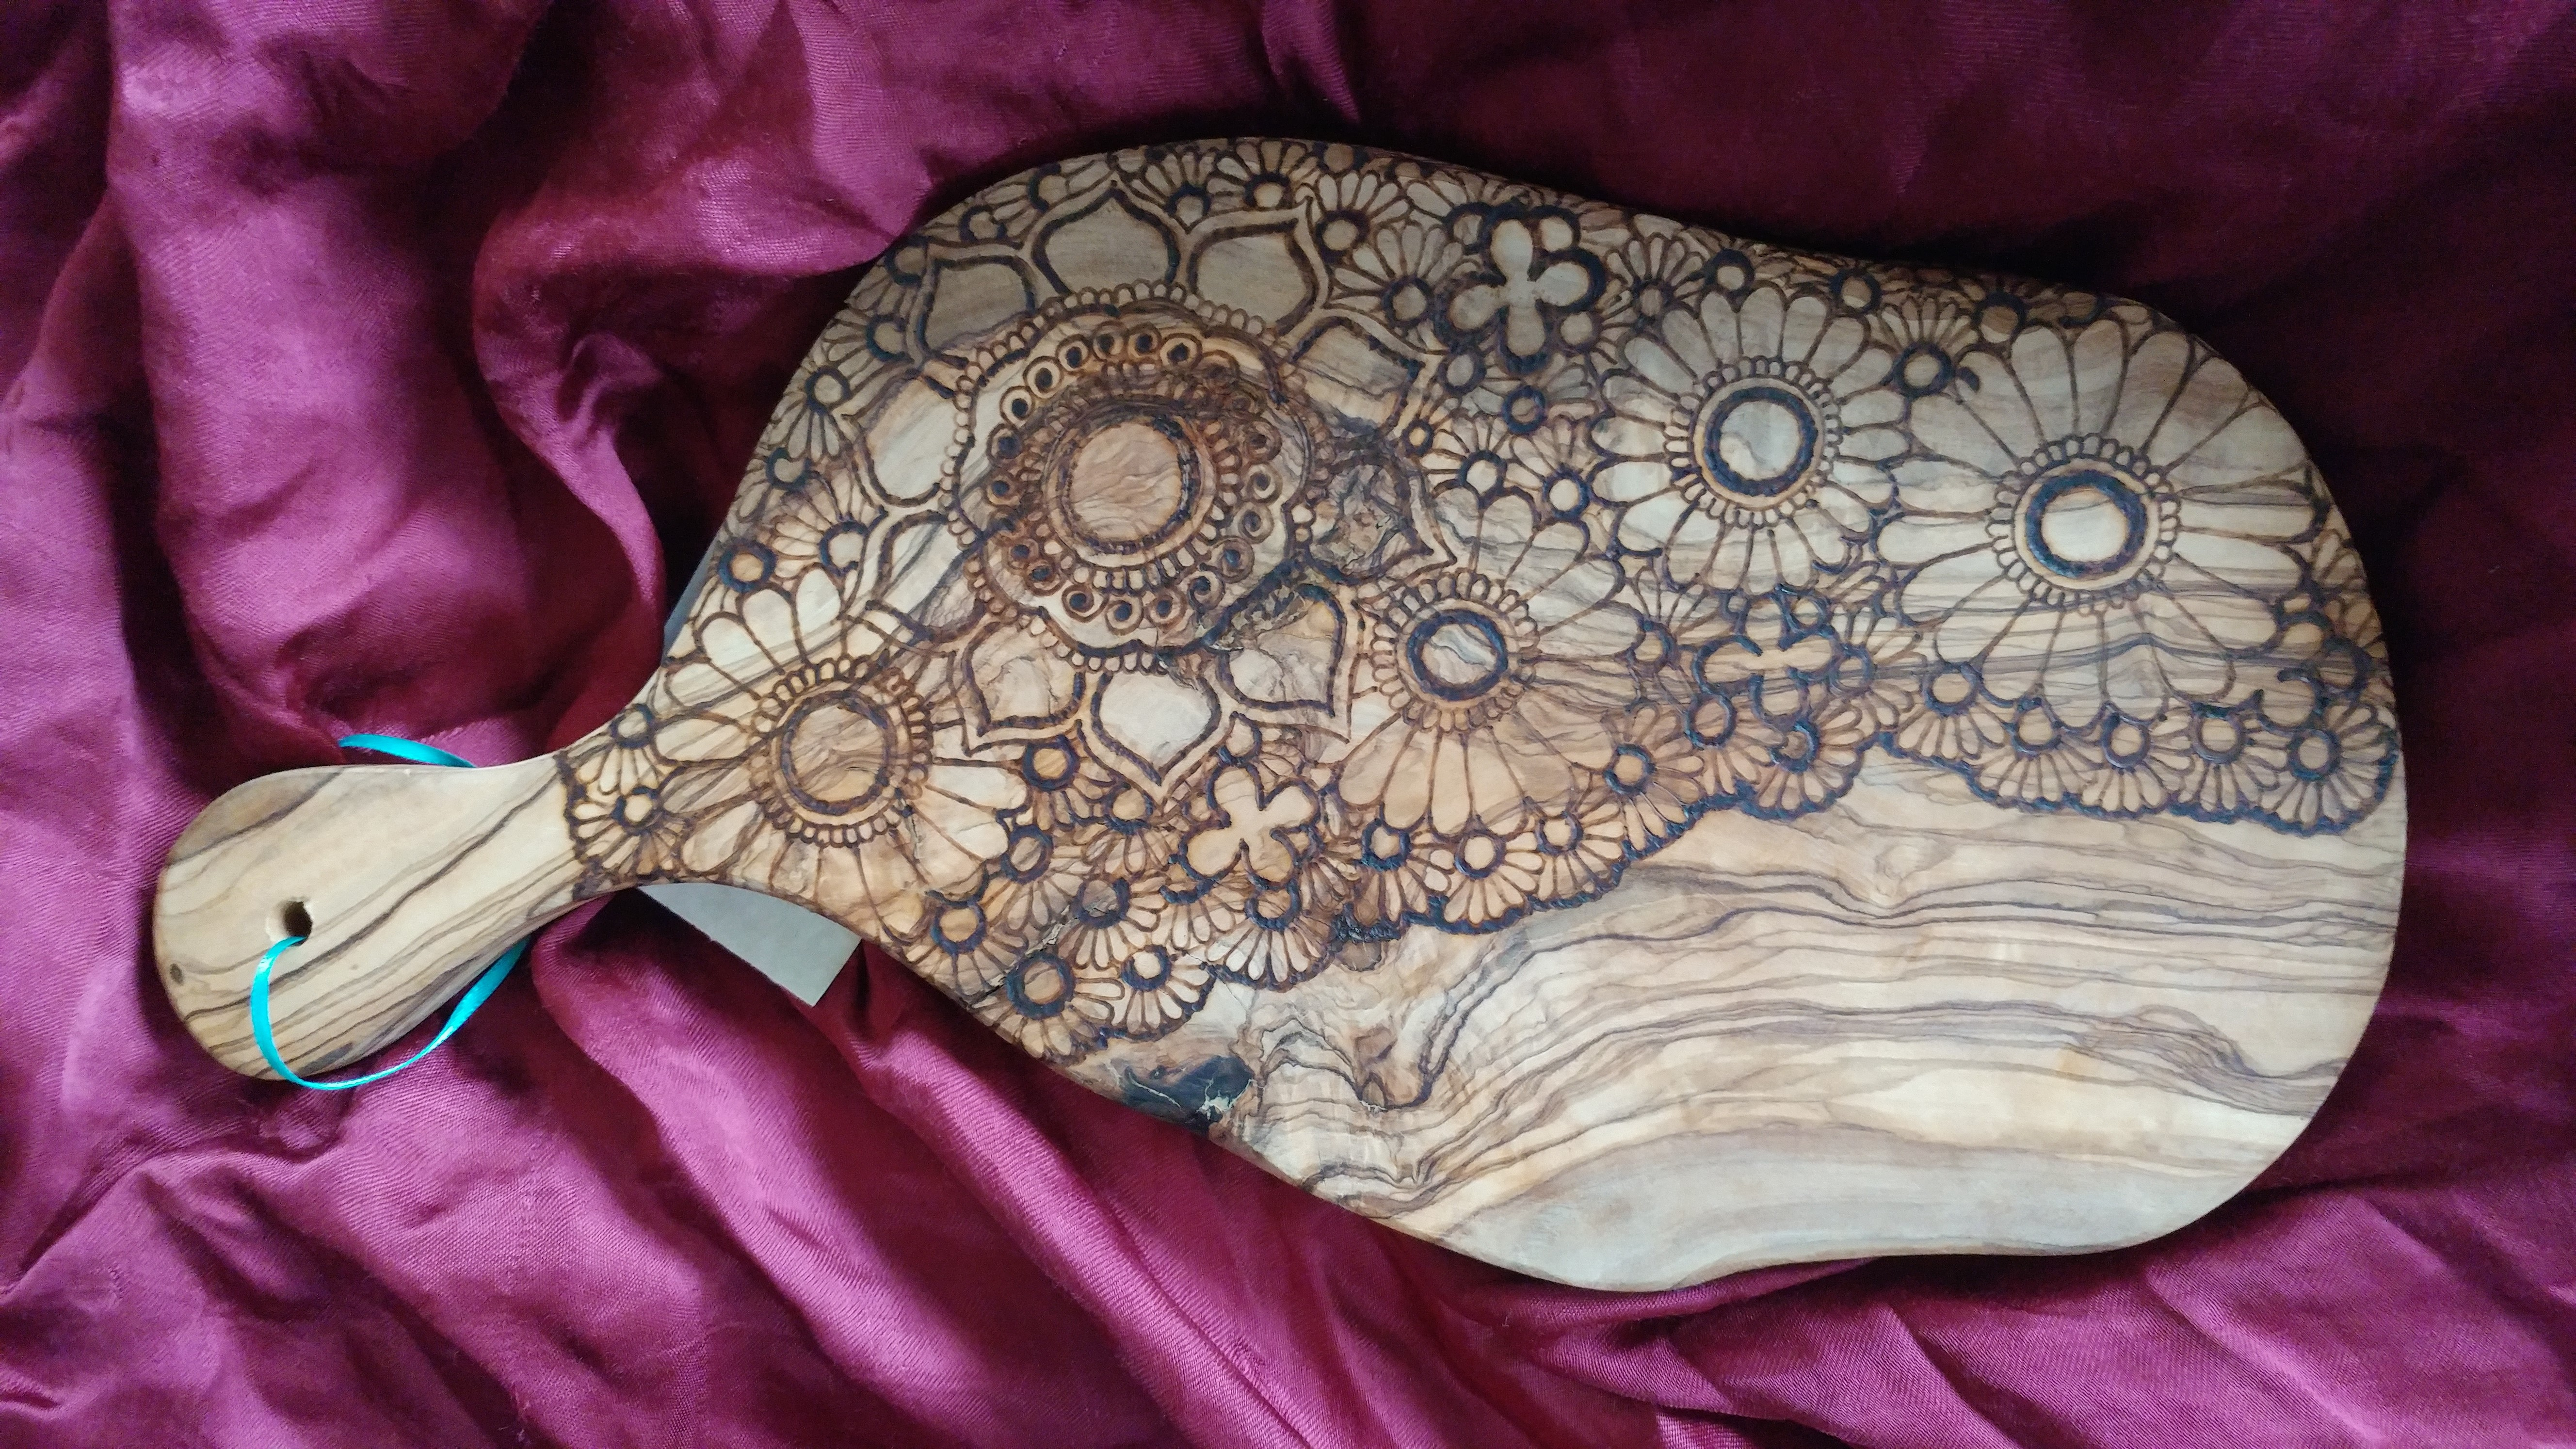 Wood Burned Henna Inspired Designs On Food Grade Bowls And Boards